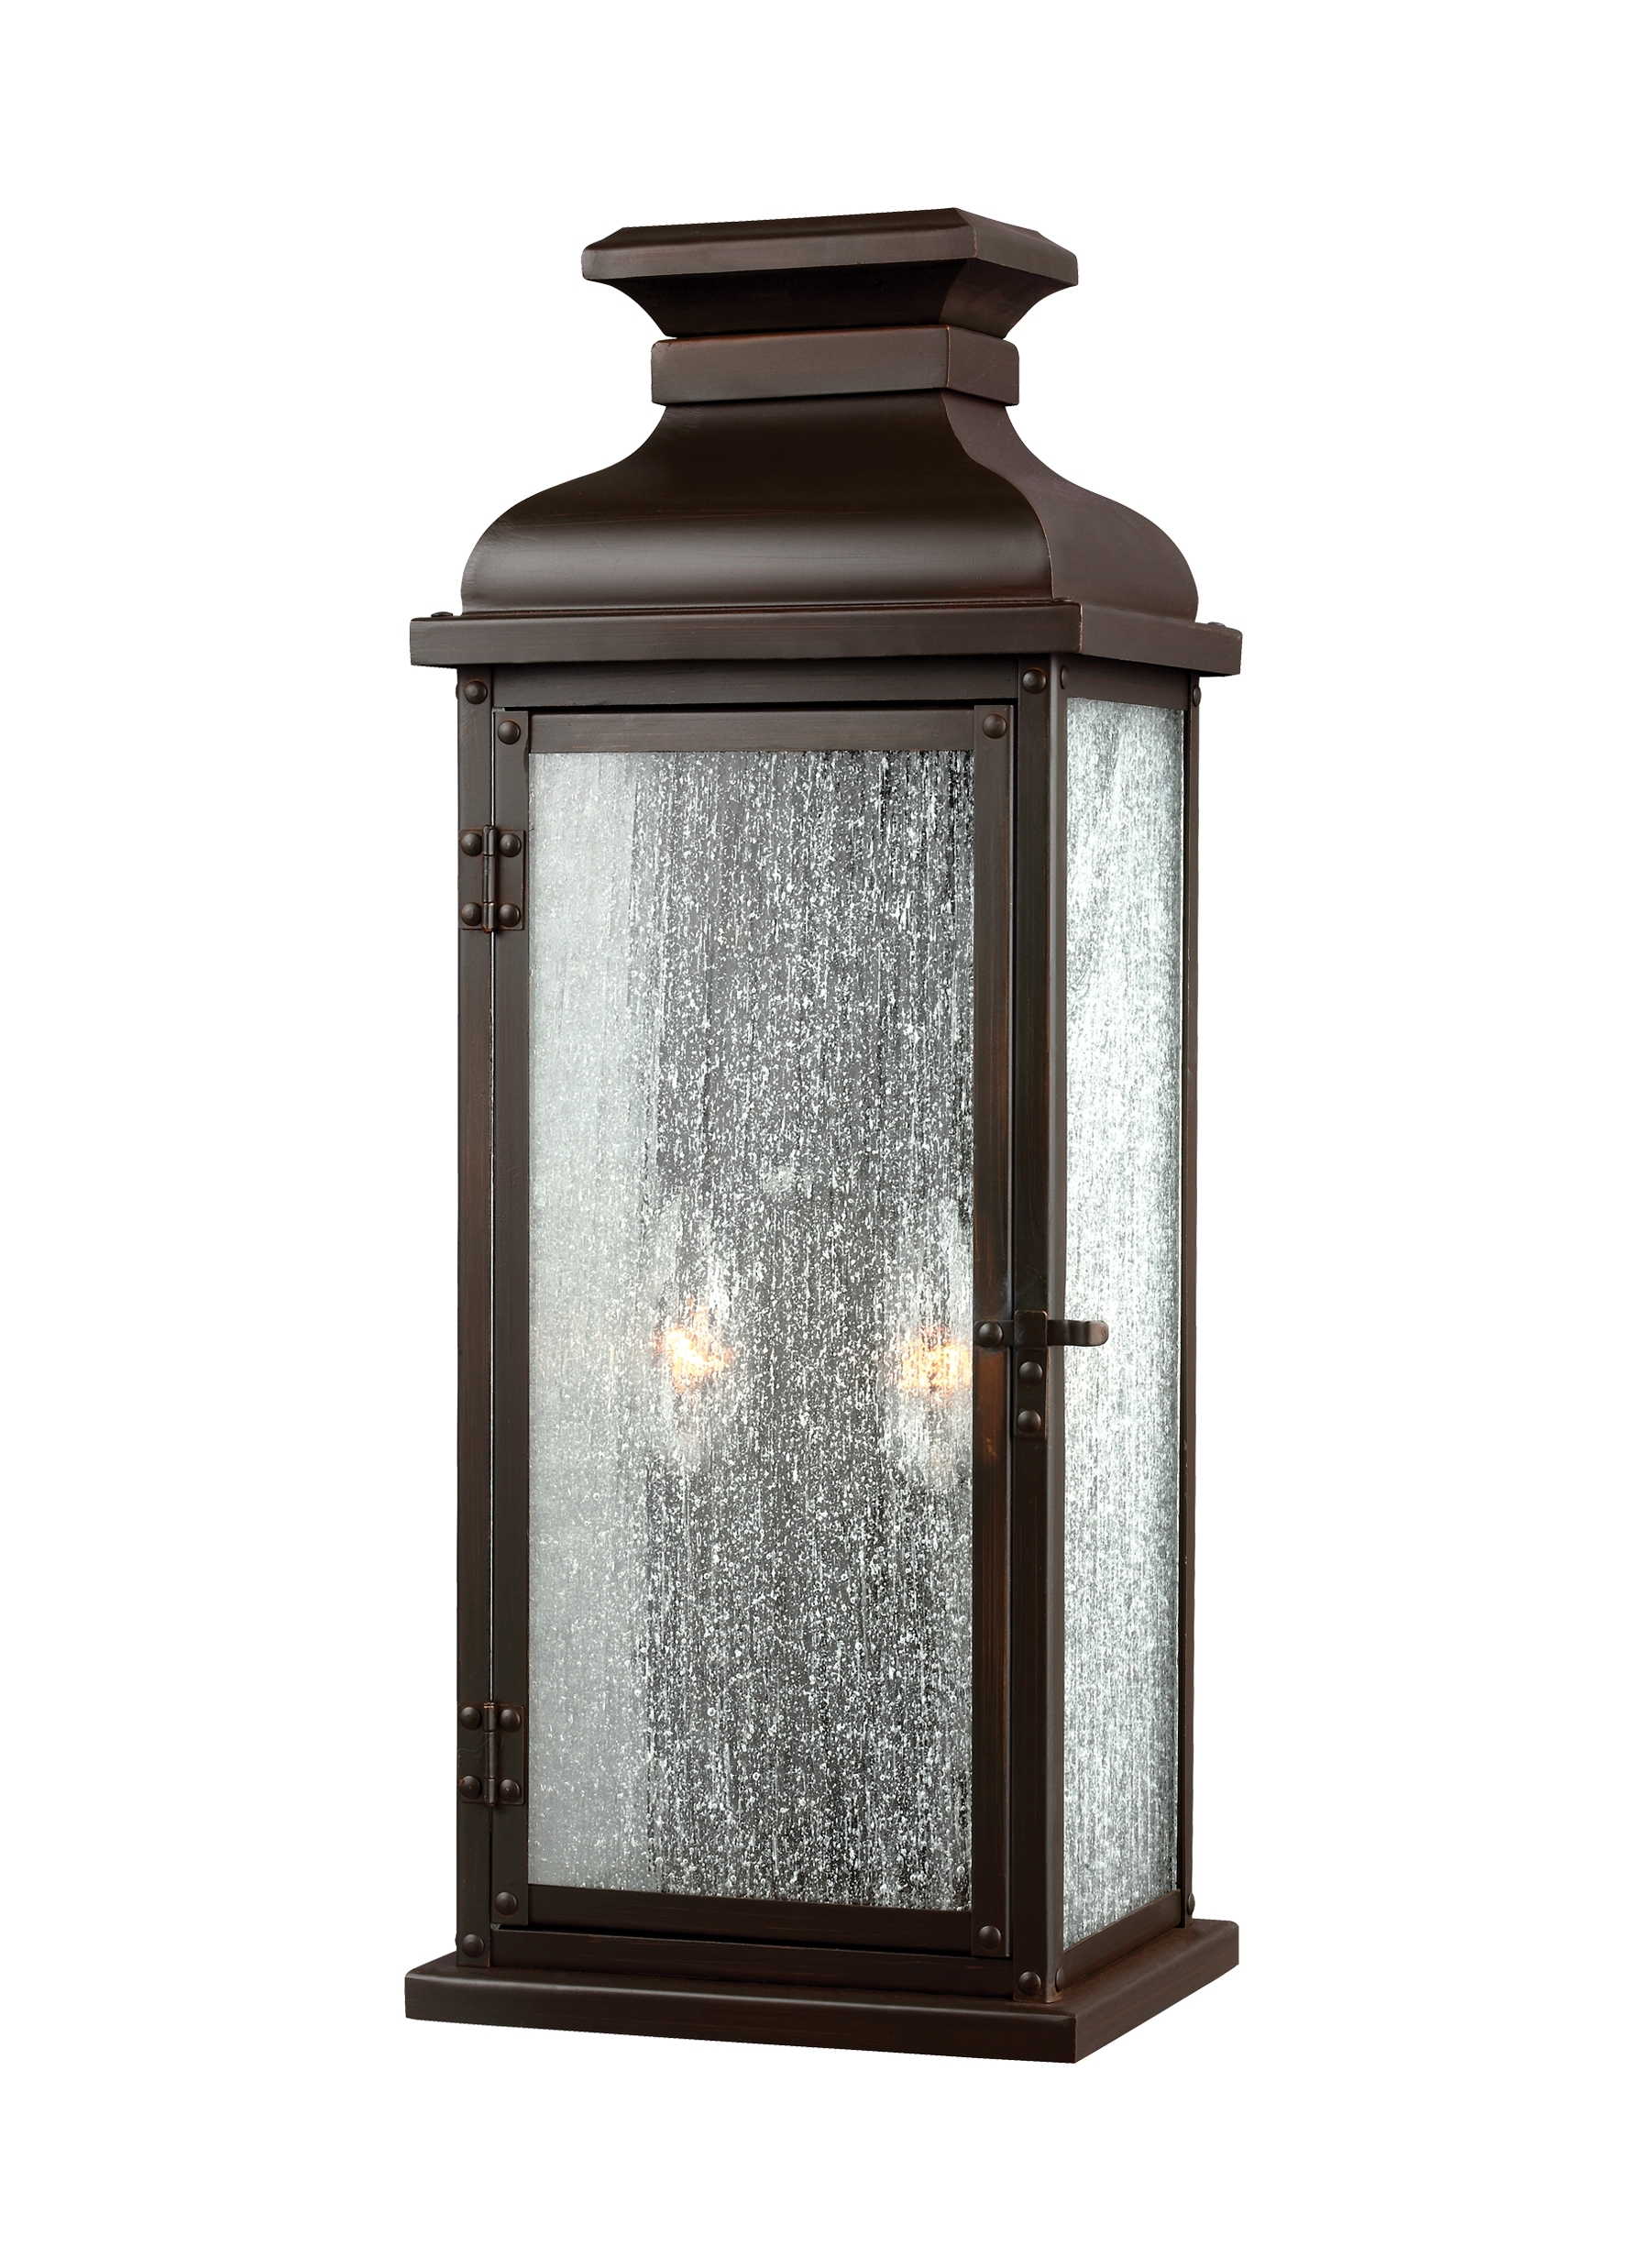 Famous Ol11101dac,2 – Light Outdoor Sconce,dark Aged Copper In Italian Outdoor Lanterns (View 3 of 20)